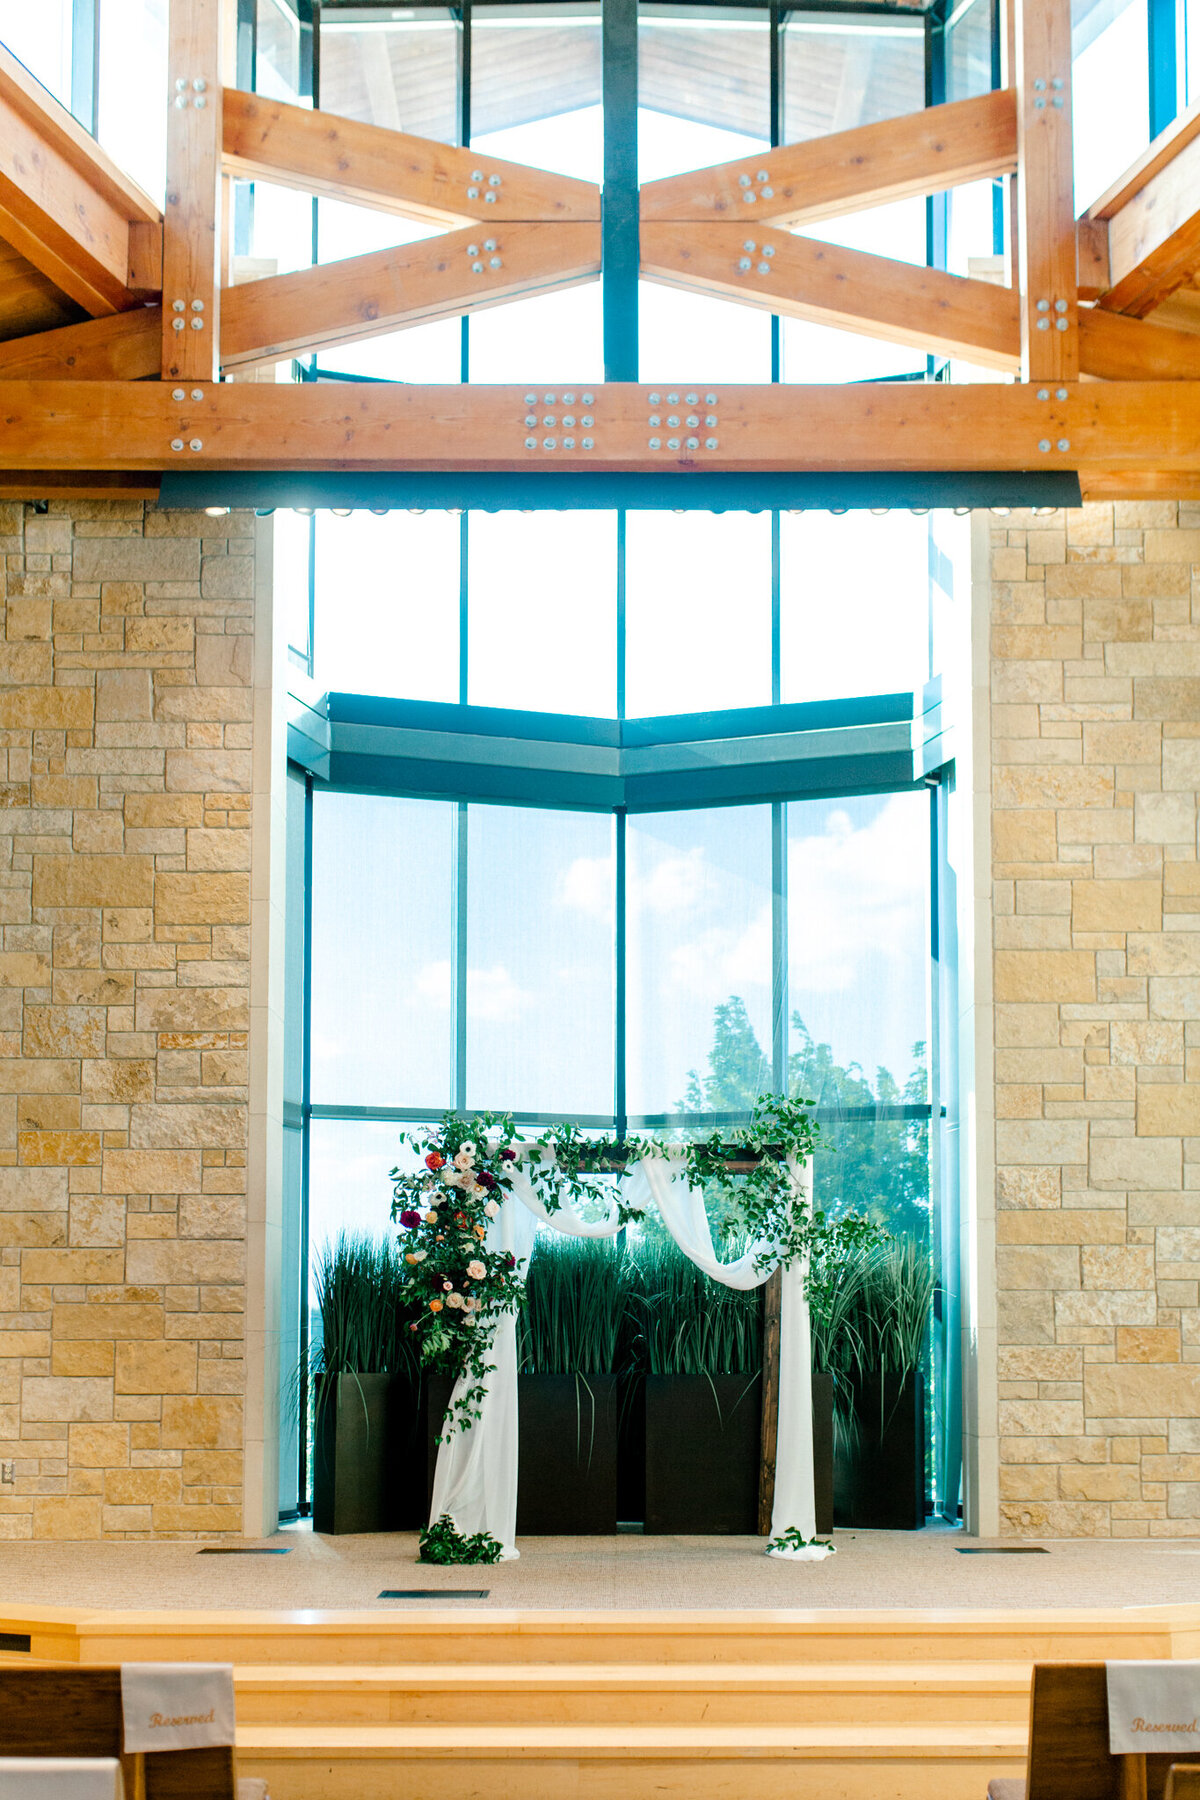 Kaylee & Michael's Wedding at Watermark Community Church | Dallas Wedding Photographer | Sami Kathryn Photography-102